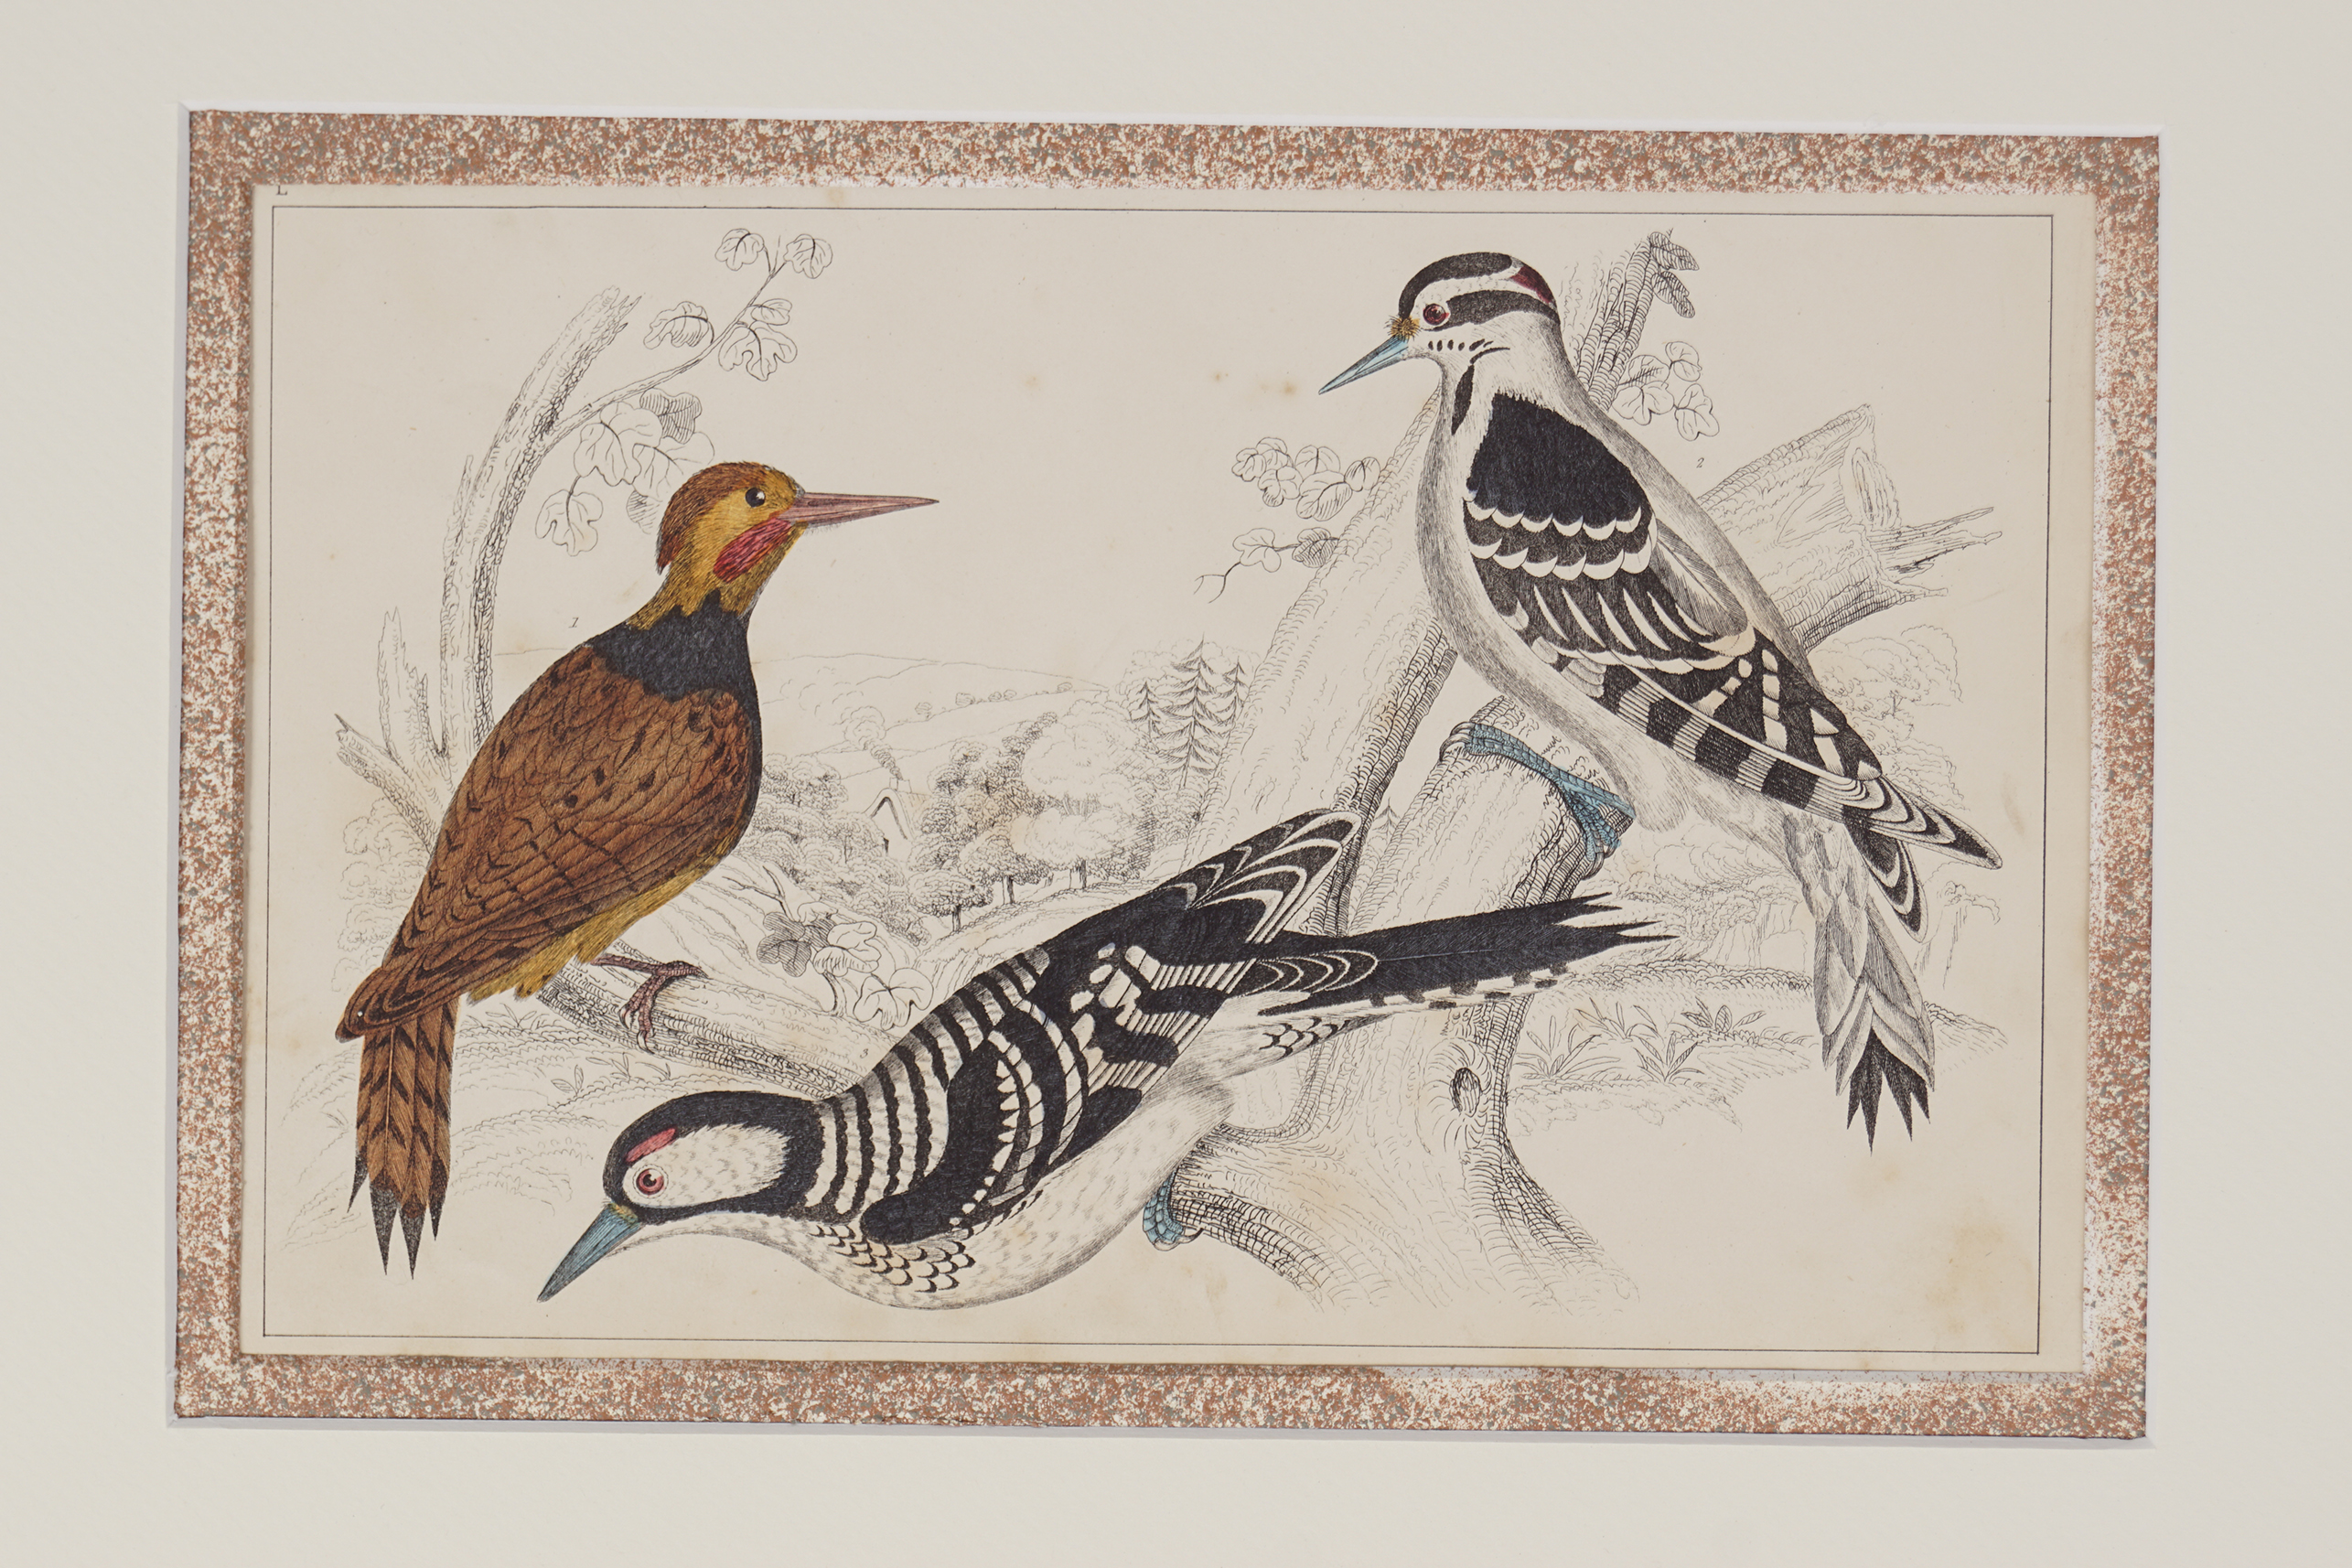 SET OF 4 18TH-CENTURY HAND COLOURED PRINTS - Image 3 of 5